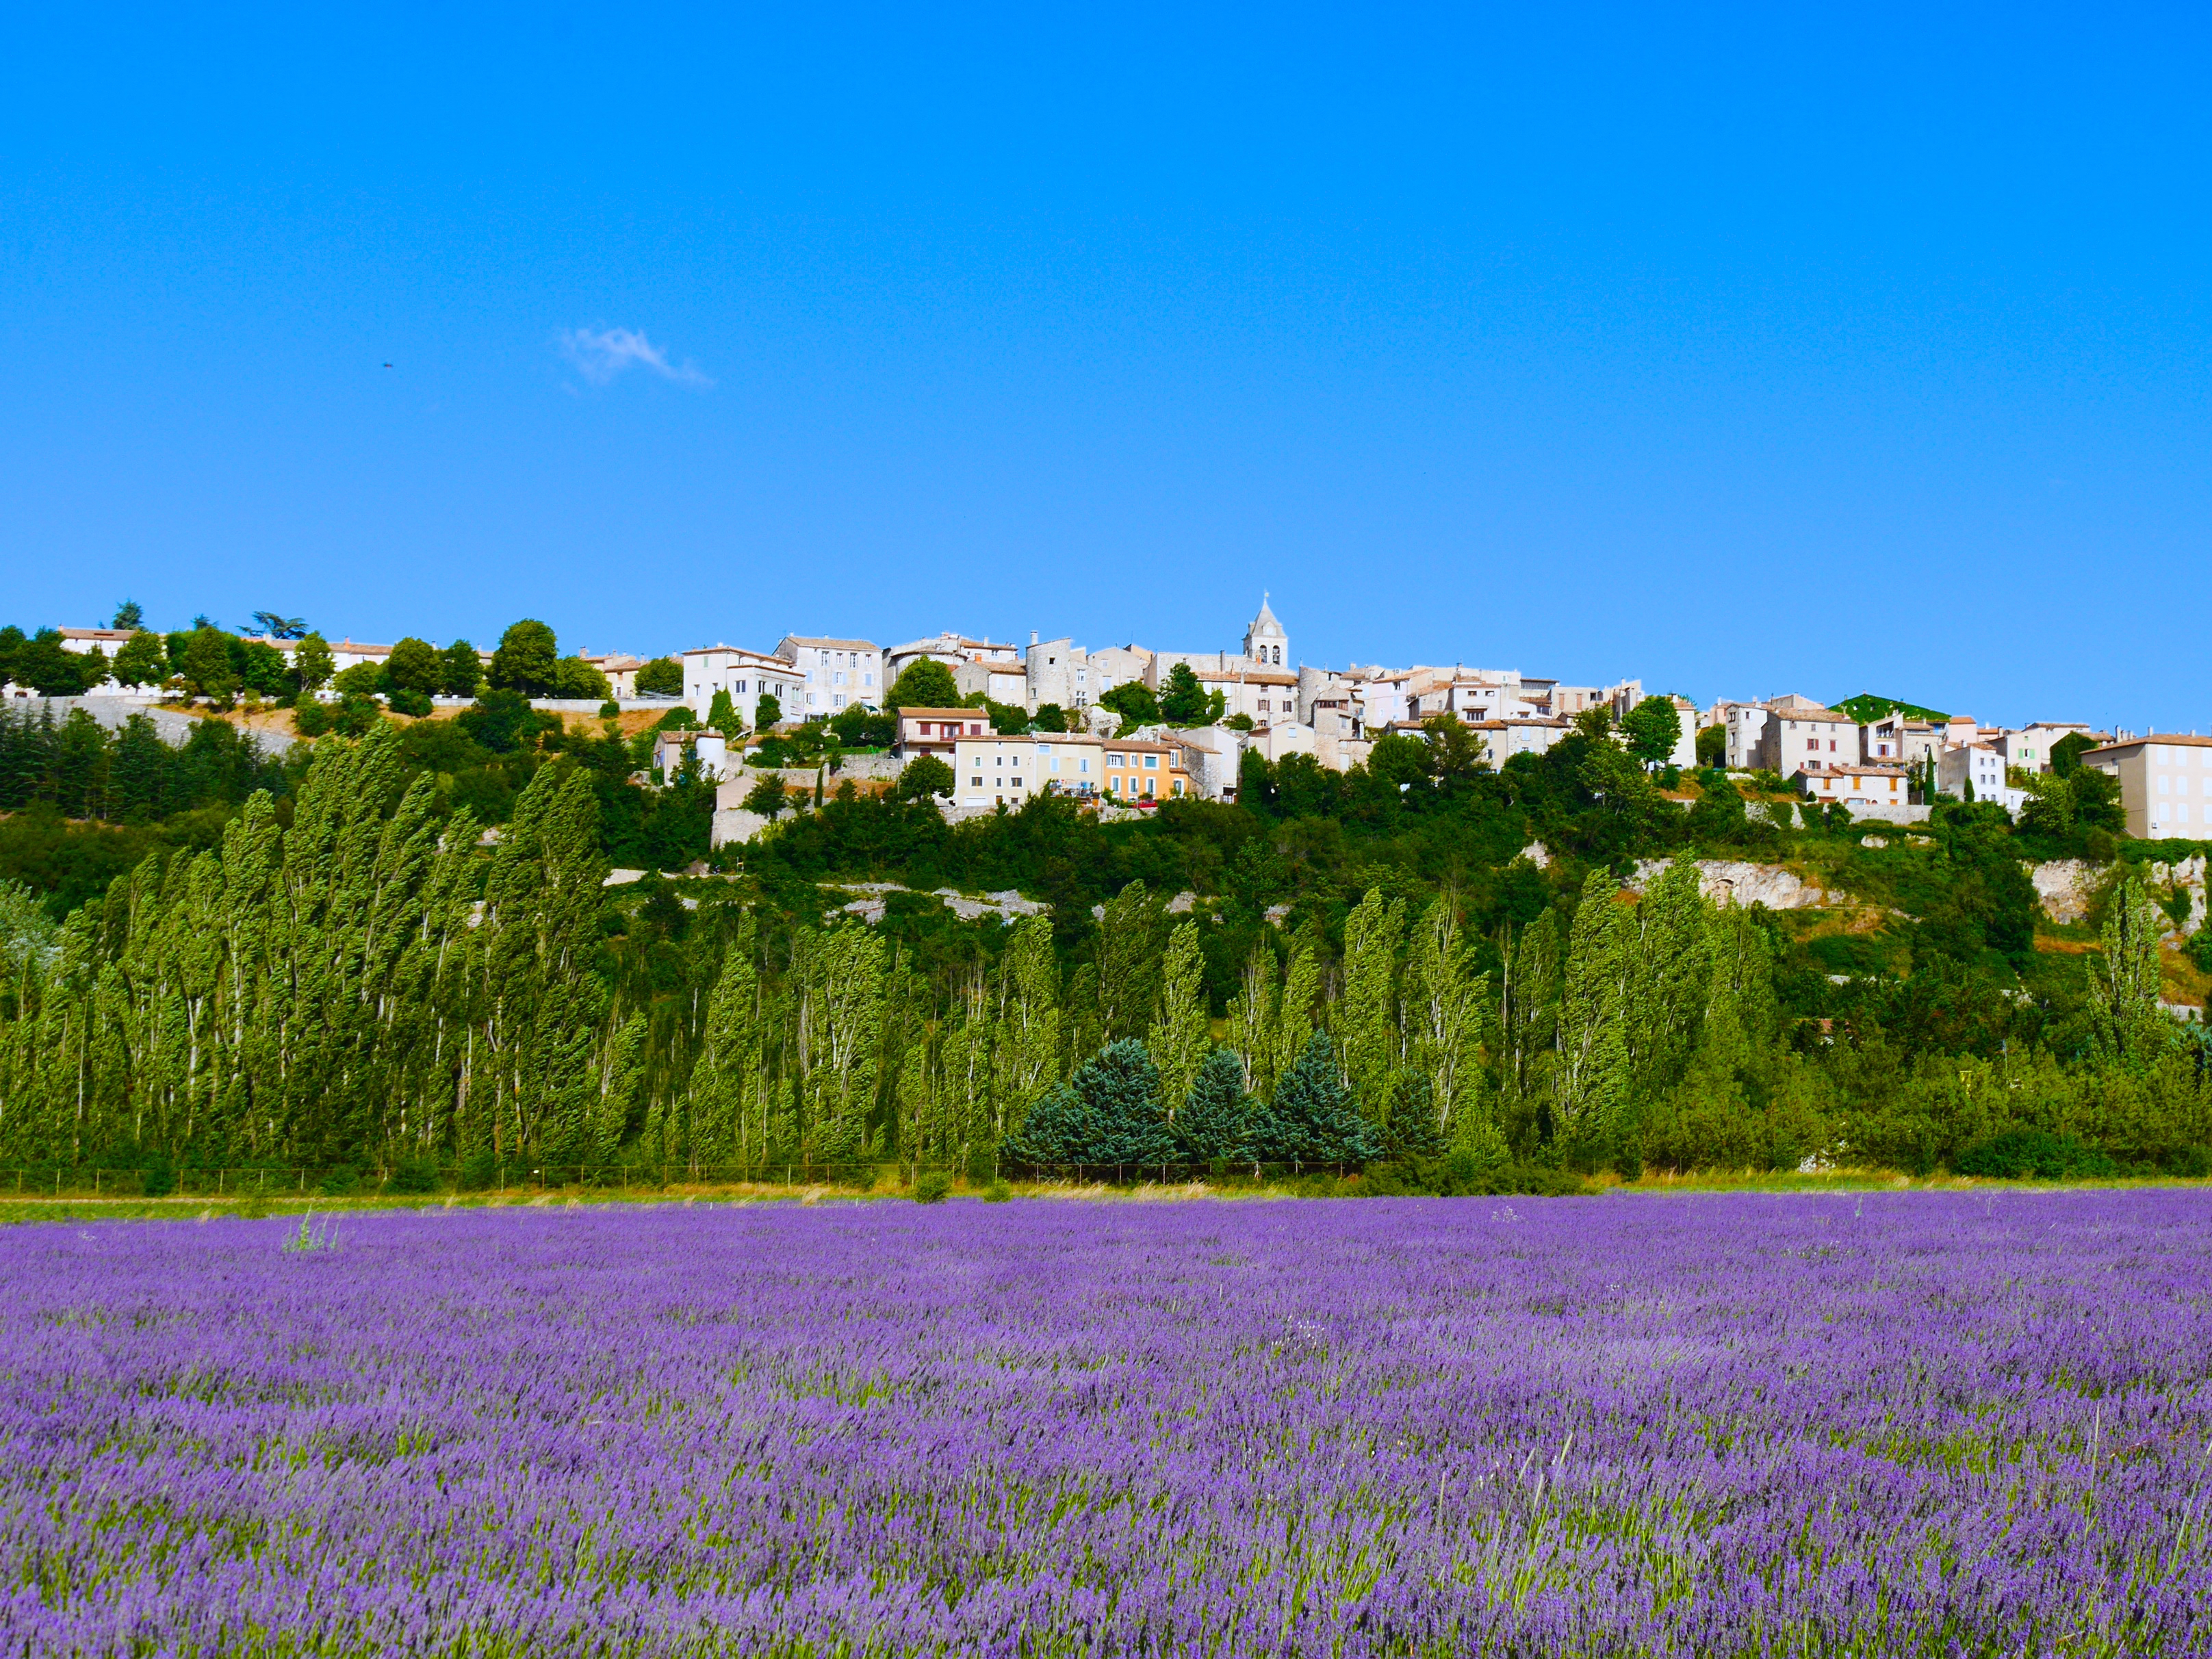 Picturesque field of lavender and village